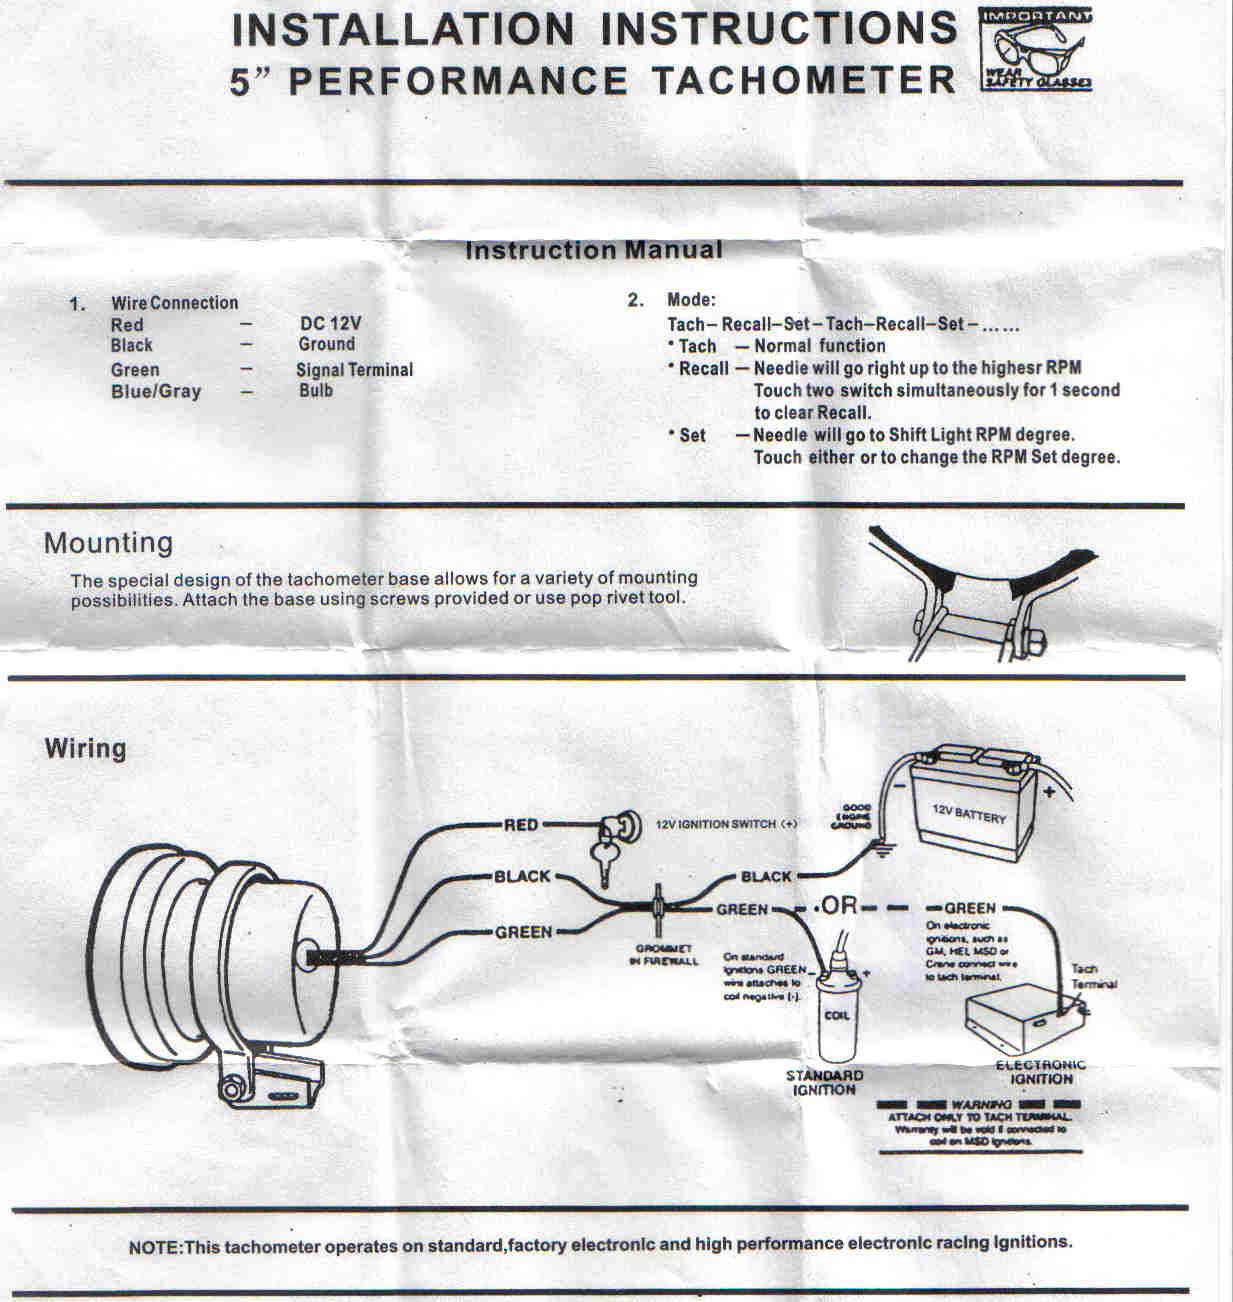 post 39133 1196591761 help wiring a monster tacho cosmetic, styling & respray sau defi tachometer wiring diagram at bayanpartner.co